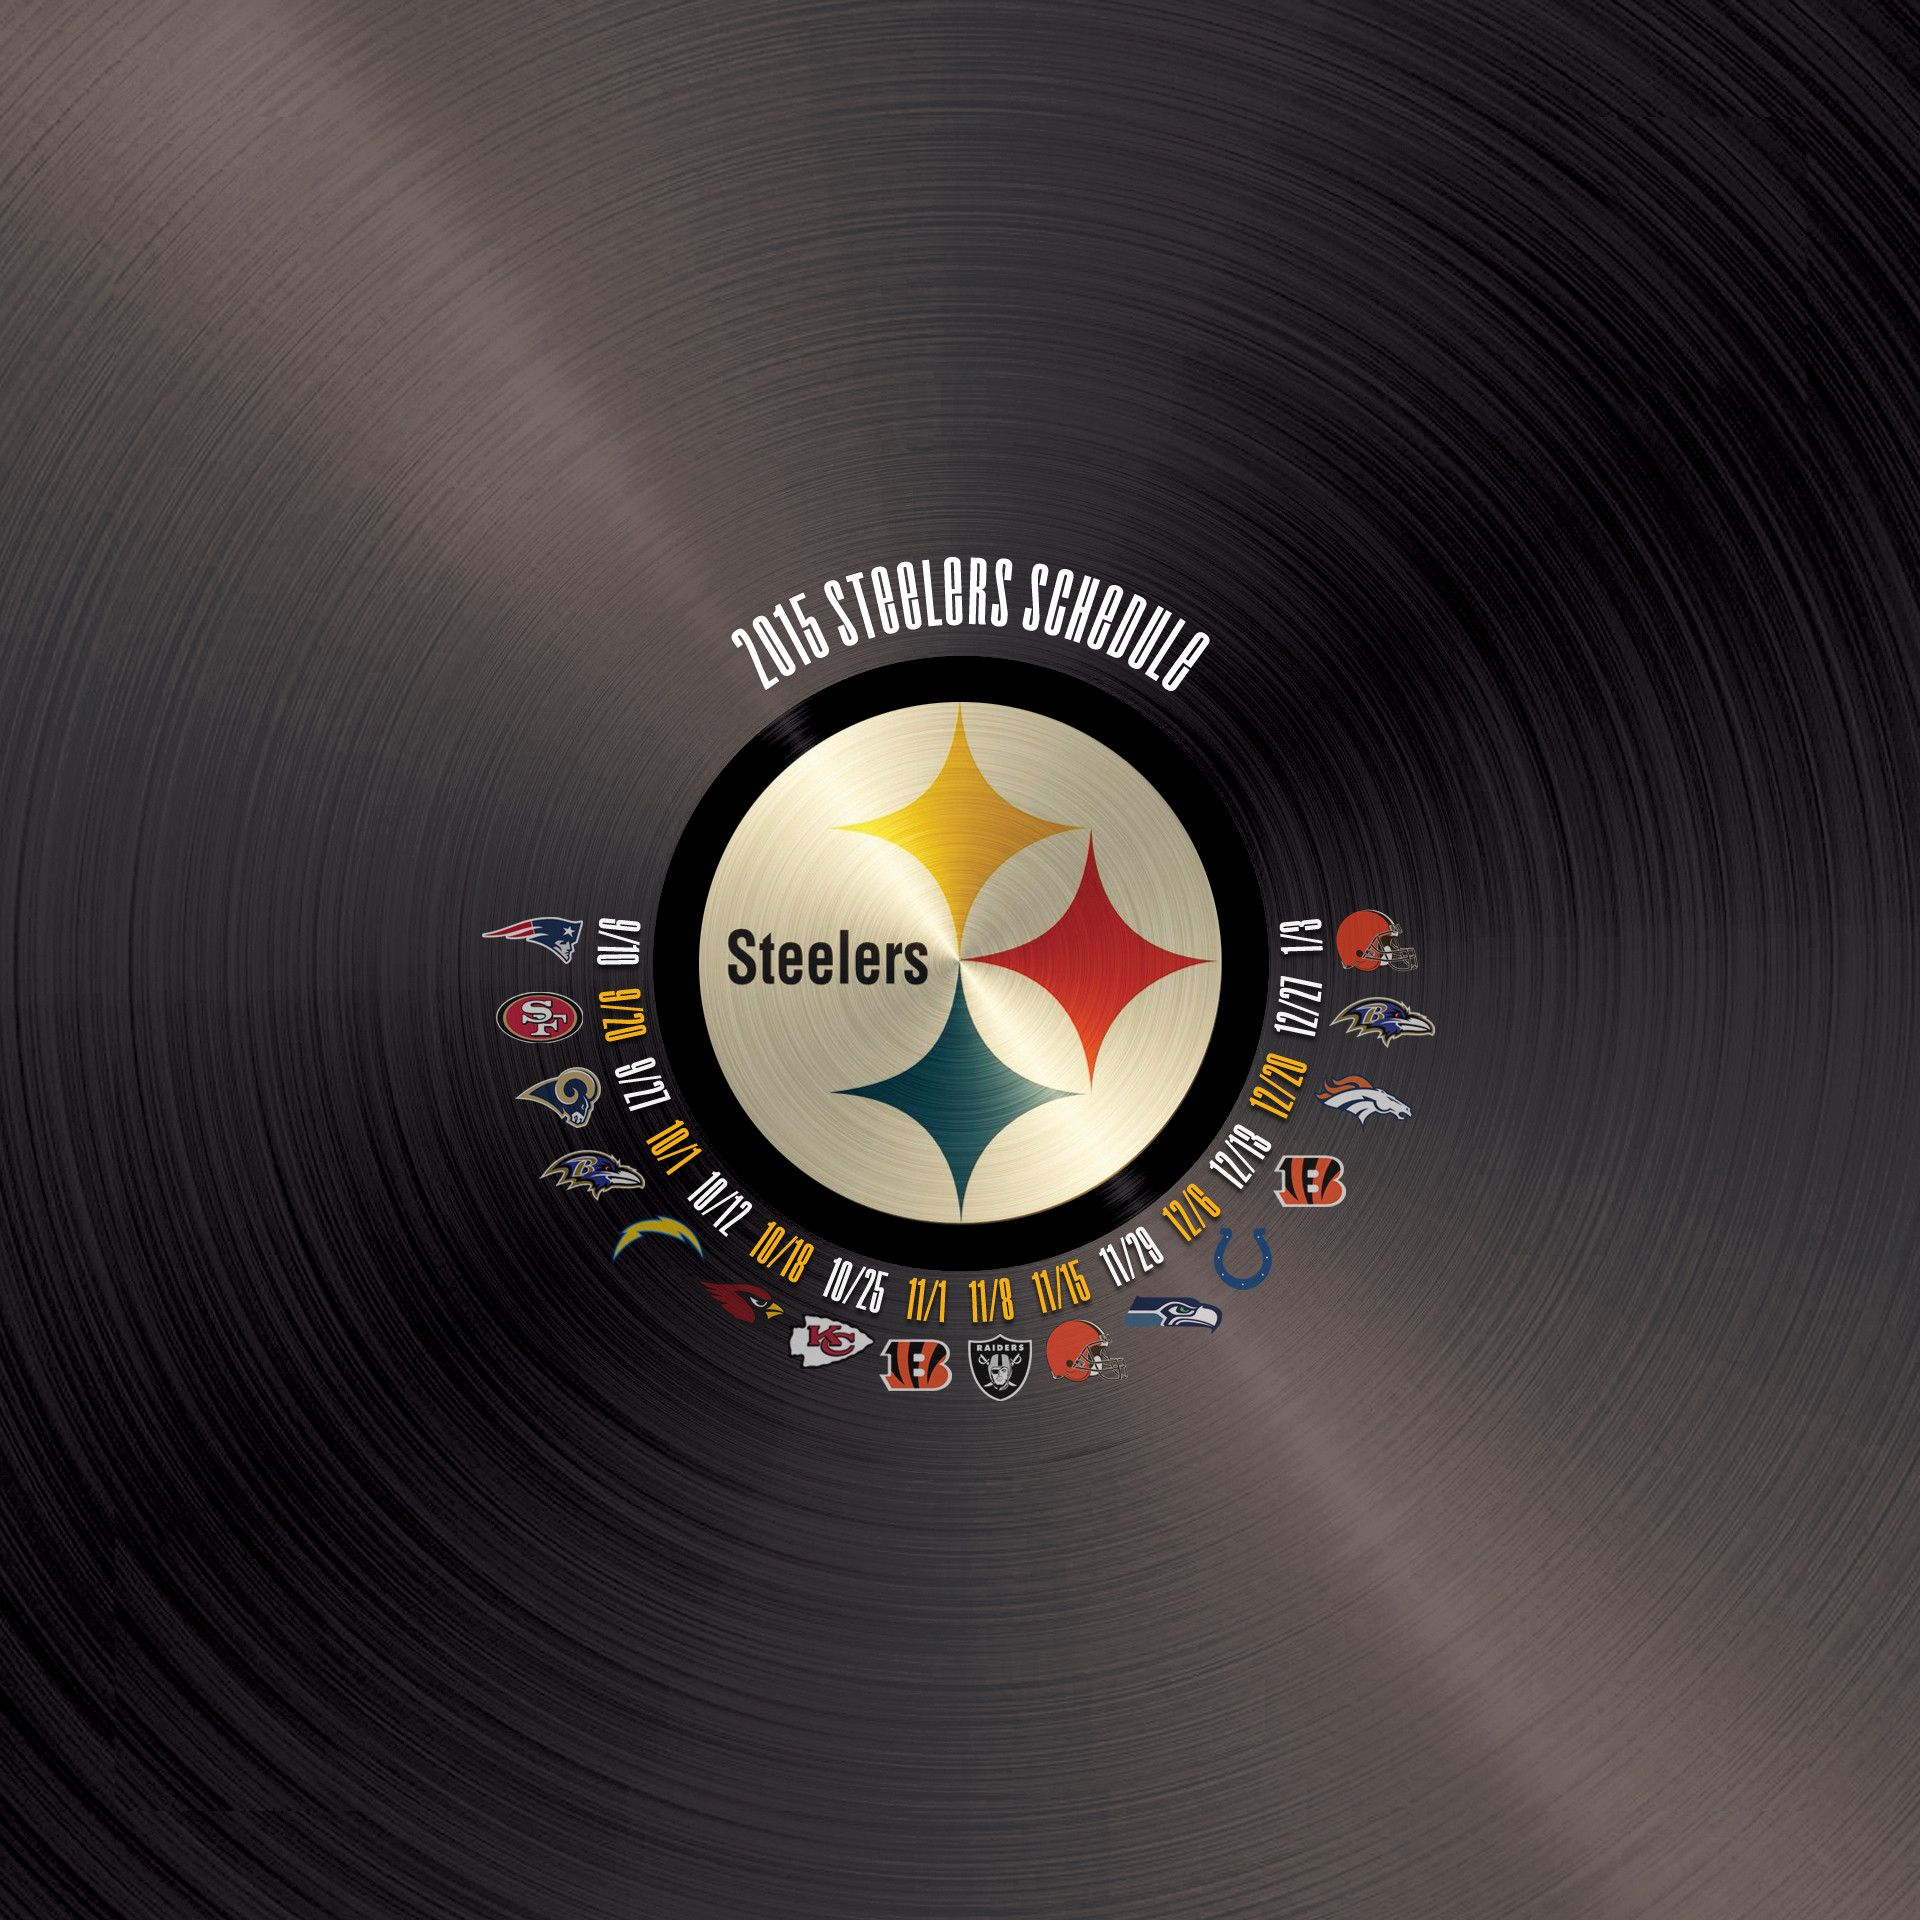 1920x1920 Here's the black version Steelers